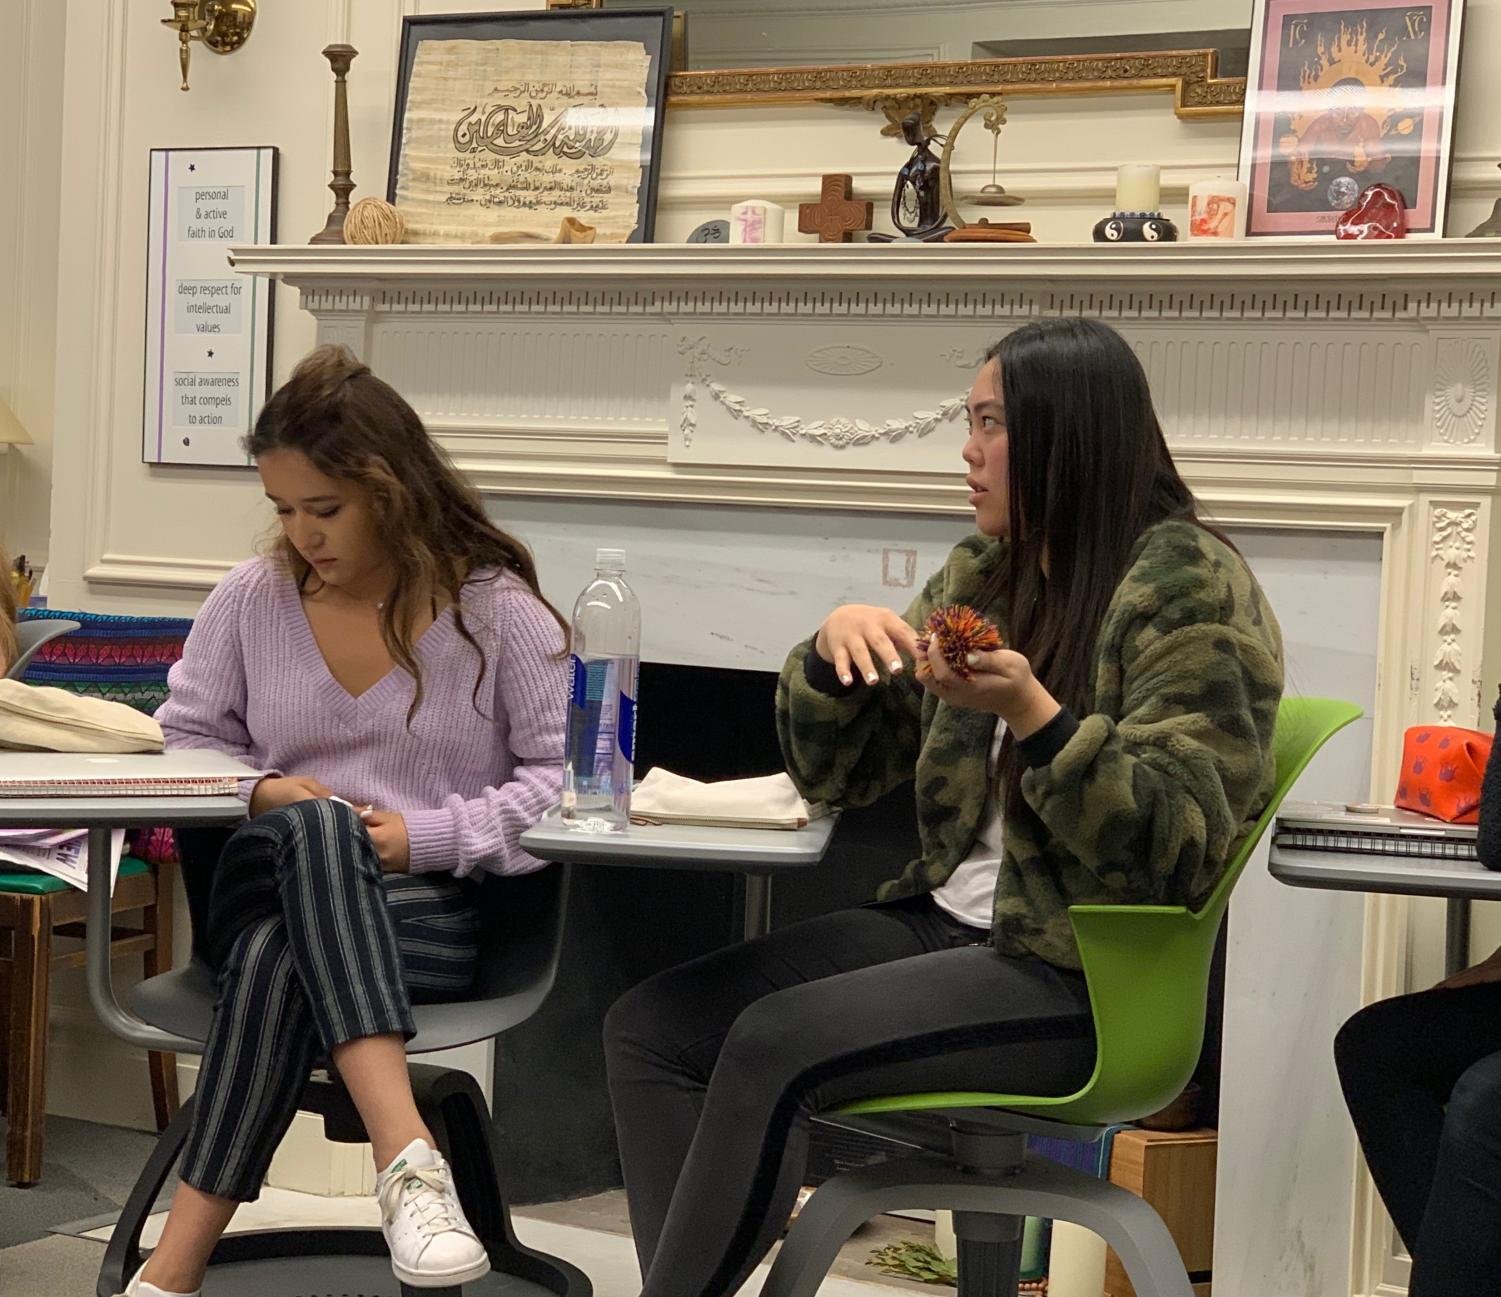 Freshmen Jennifer Surjadi reflects on what she found most interesting about Confucianism and Taoism in class today. The period often ends with reflection in order for students to show off what they learned during the class.